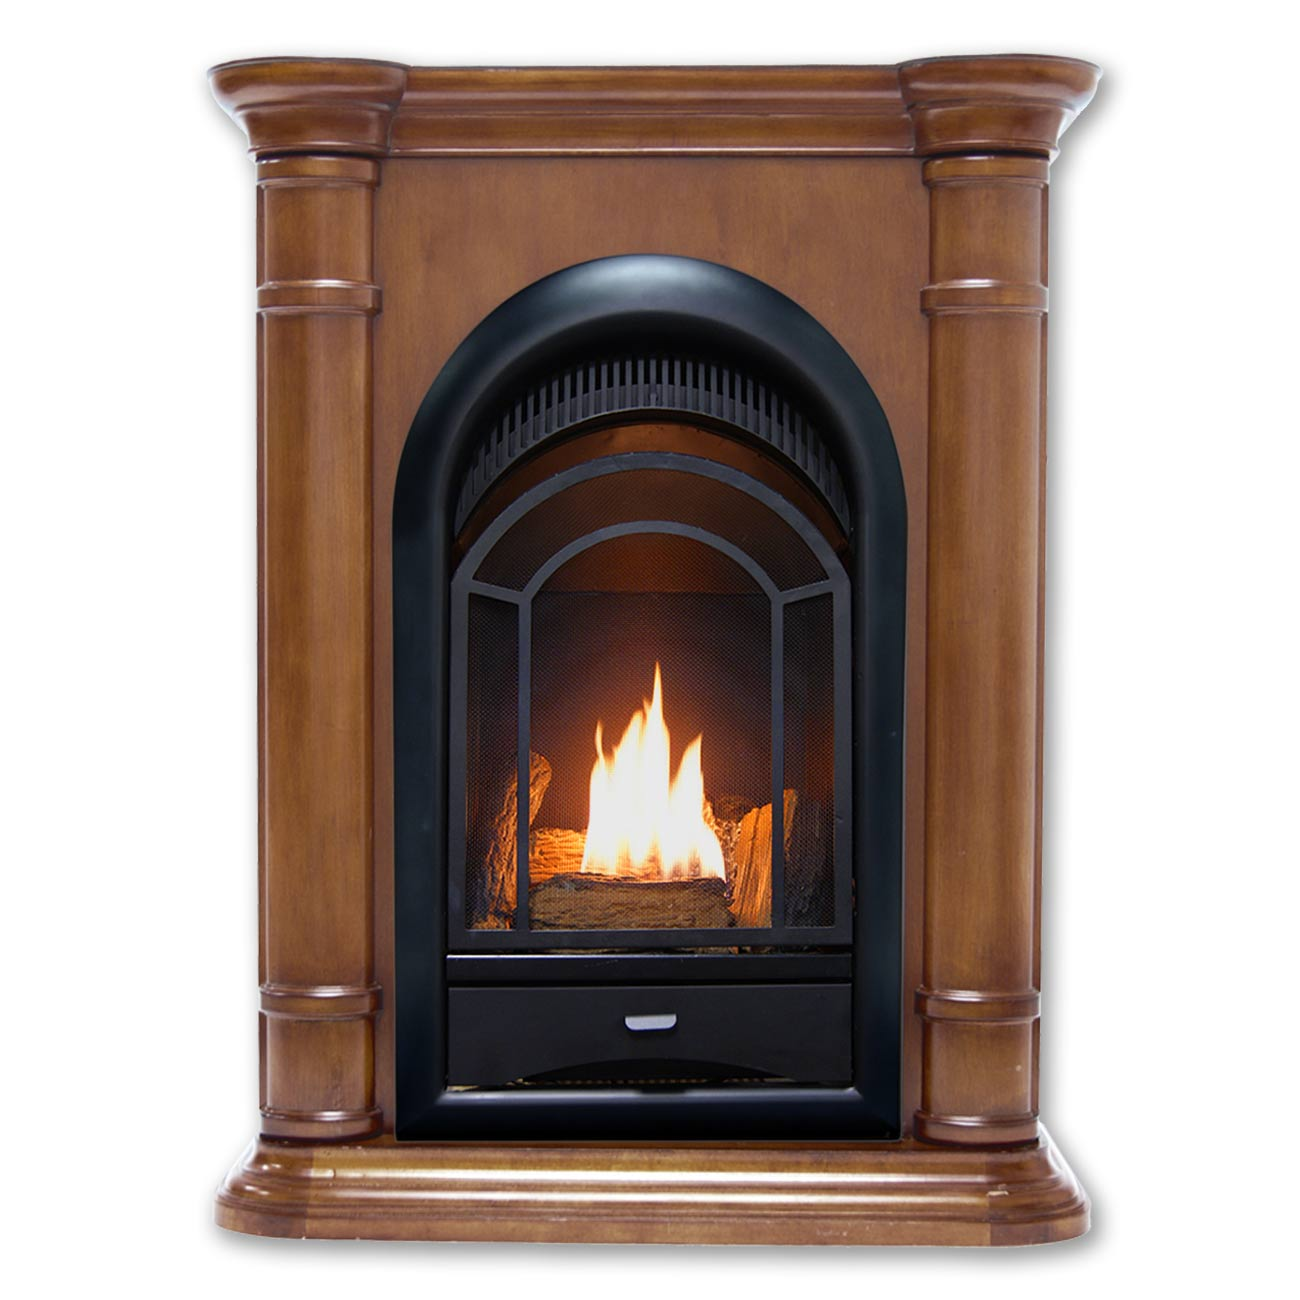 Fireplace Doesnt Heat: HearthSense Dual Fuel Ventless Fireplace, 15,000 BTU's